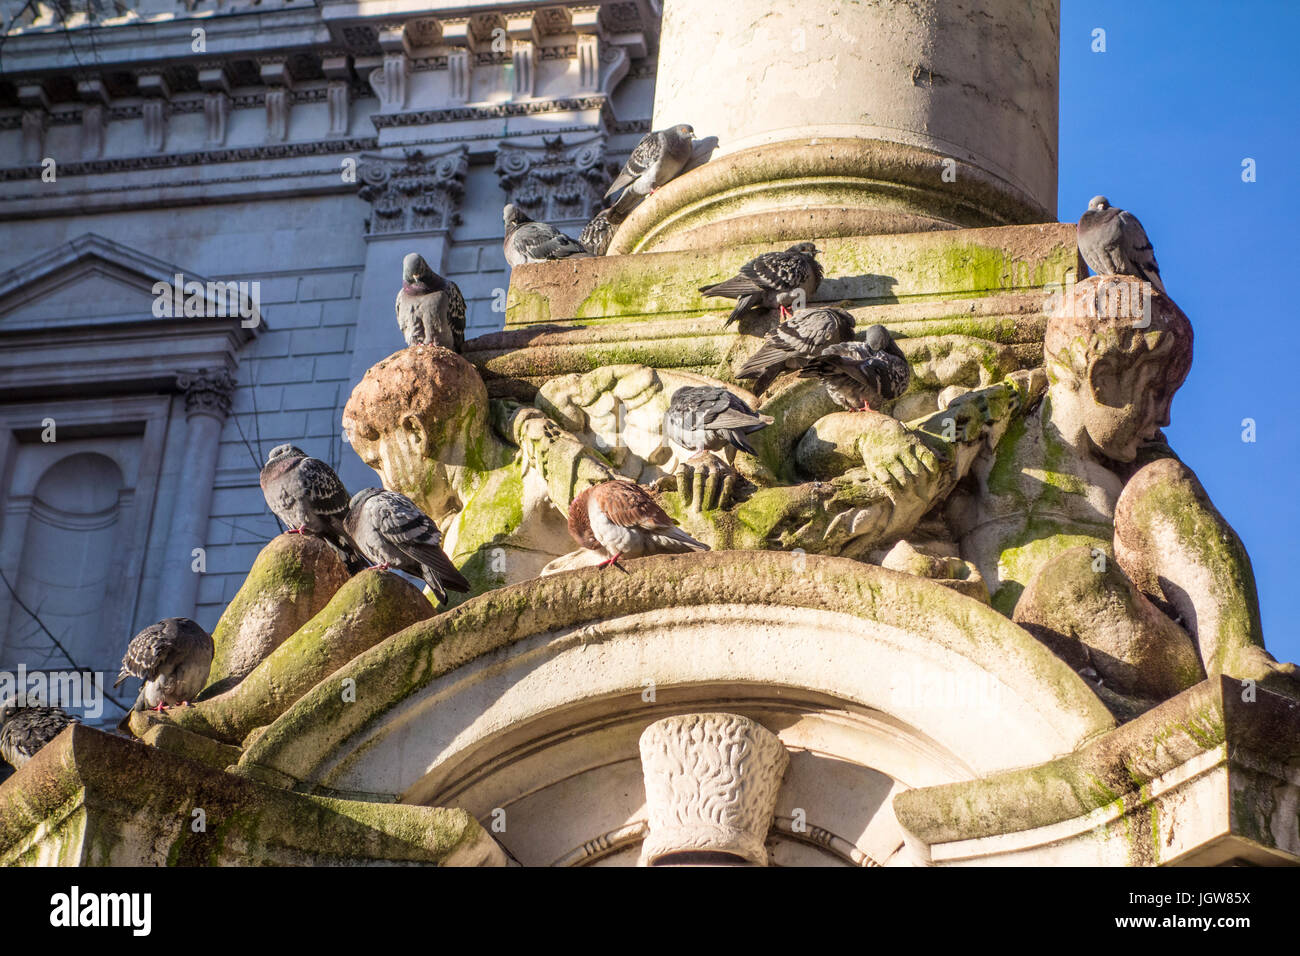 London pigeons (columbidae) roosting on a monument in St Paul's Churchyard, City of London, UK - Stock Image